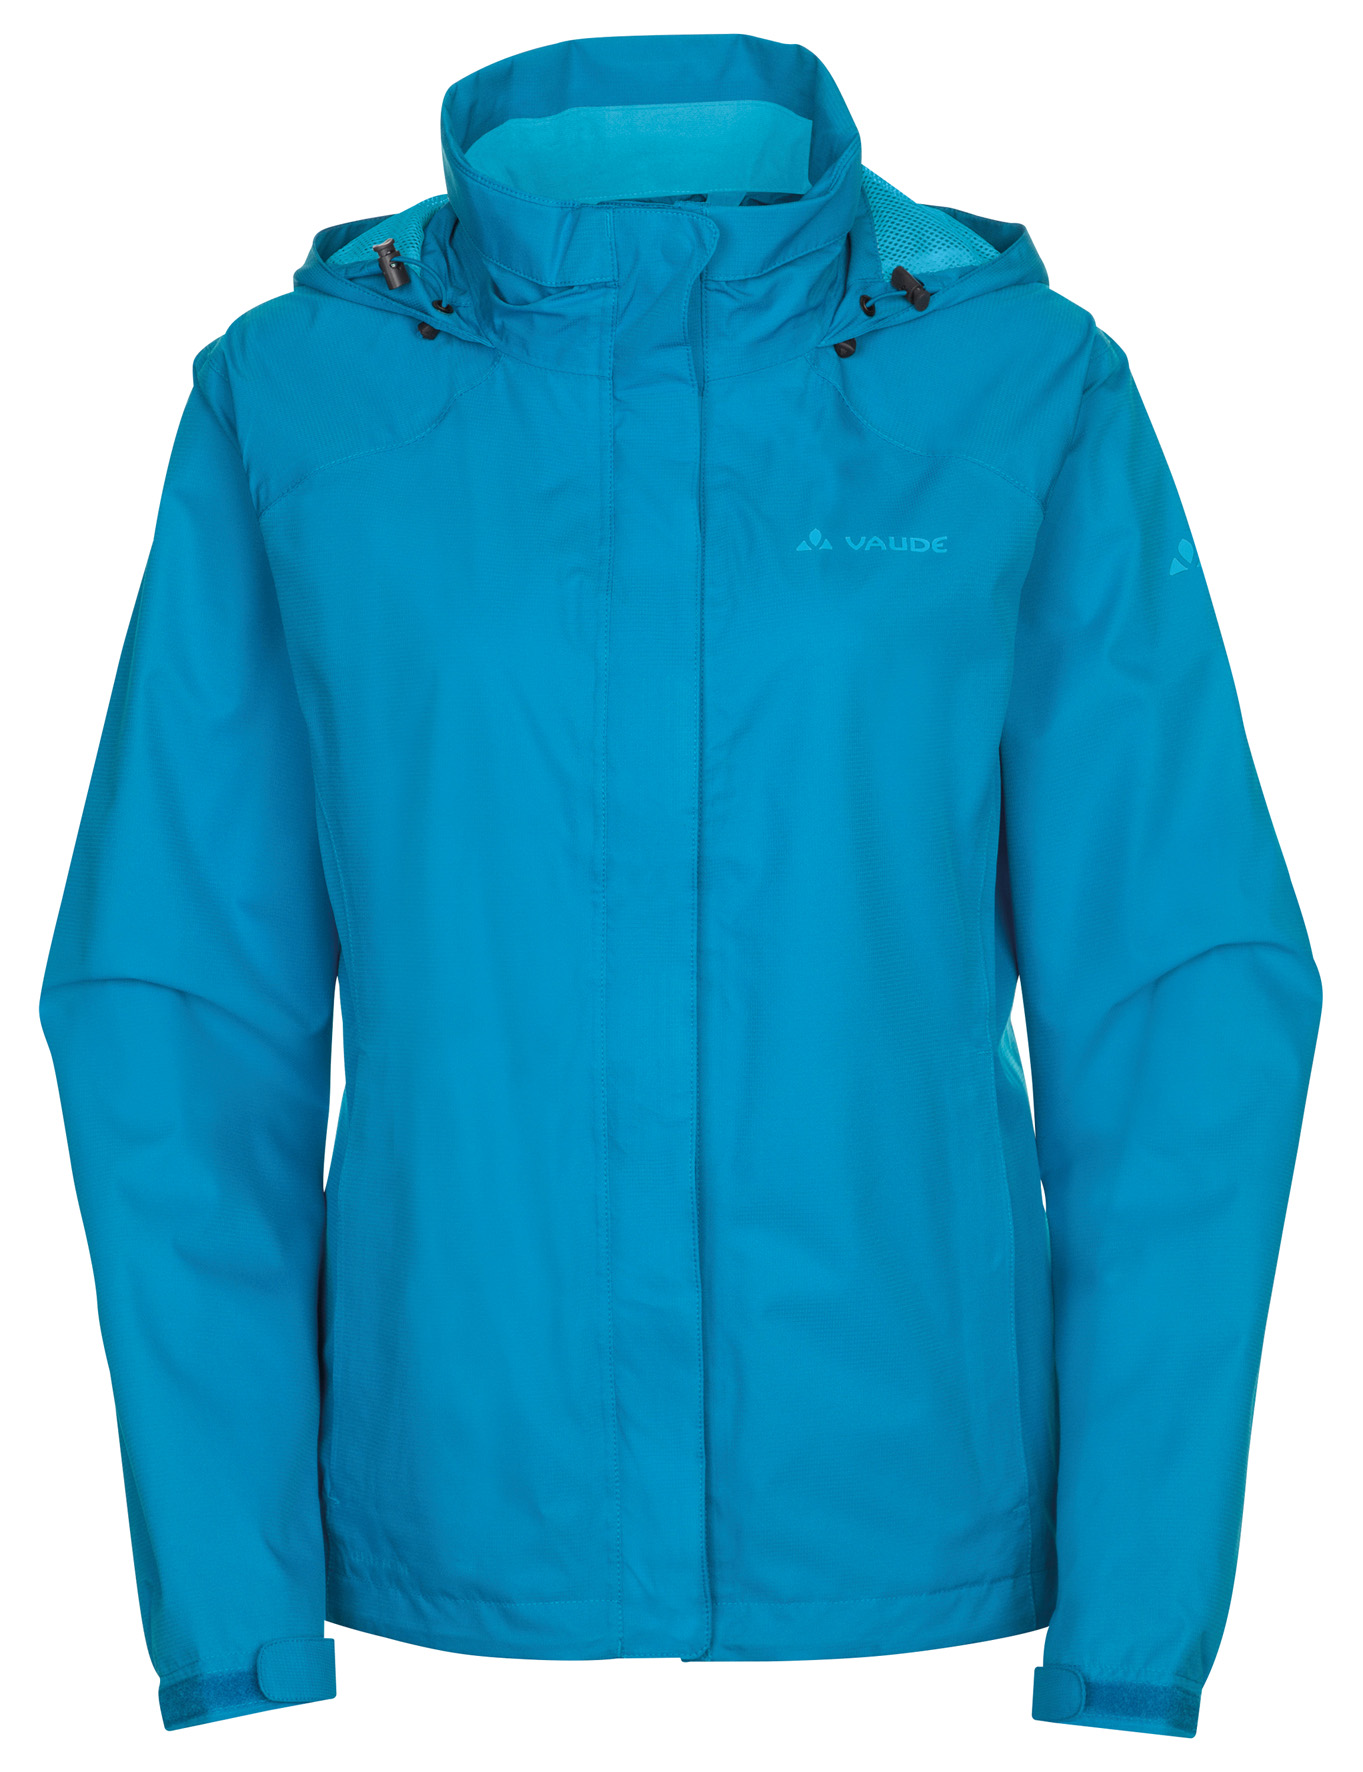 VAUDE Women´s Escape Bike Light Jacket spring blue Größe 36 - schneider-sports